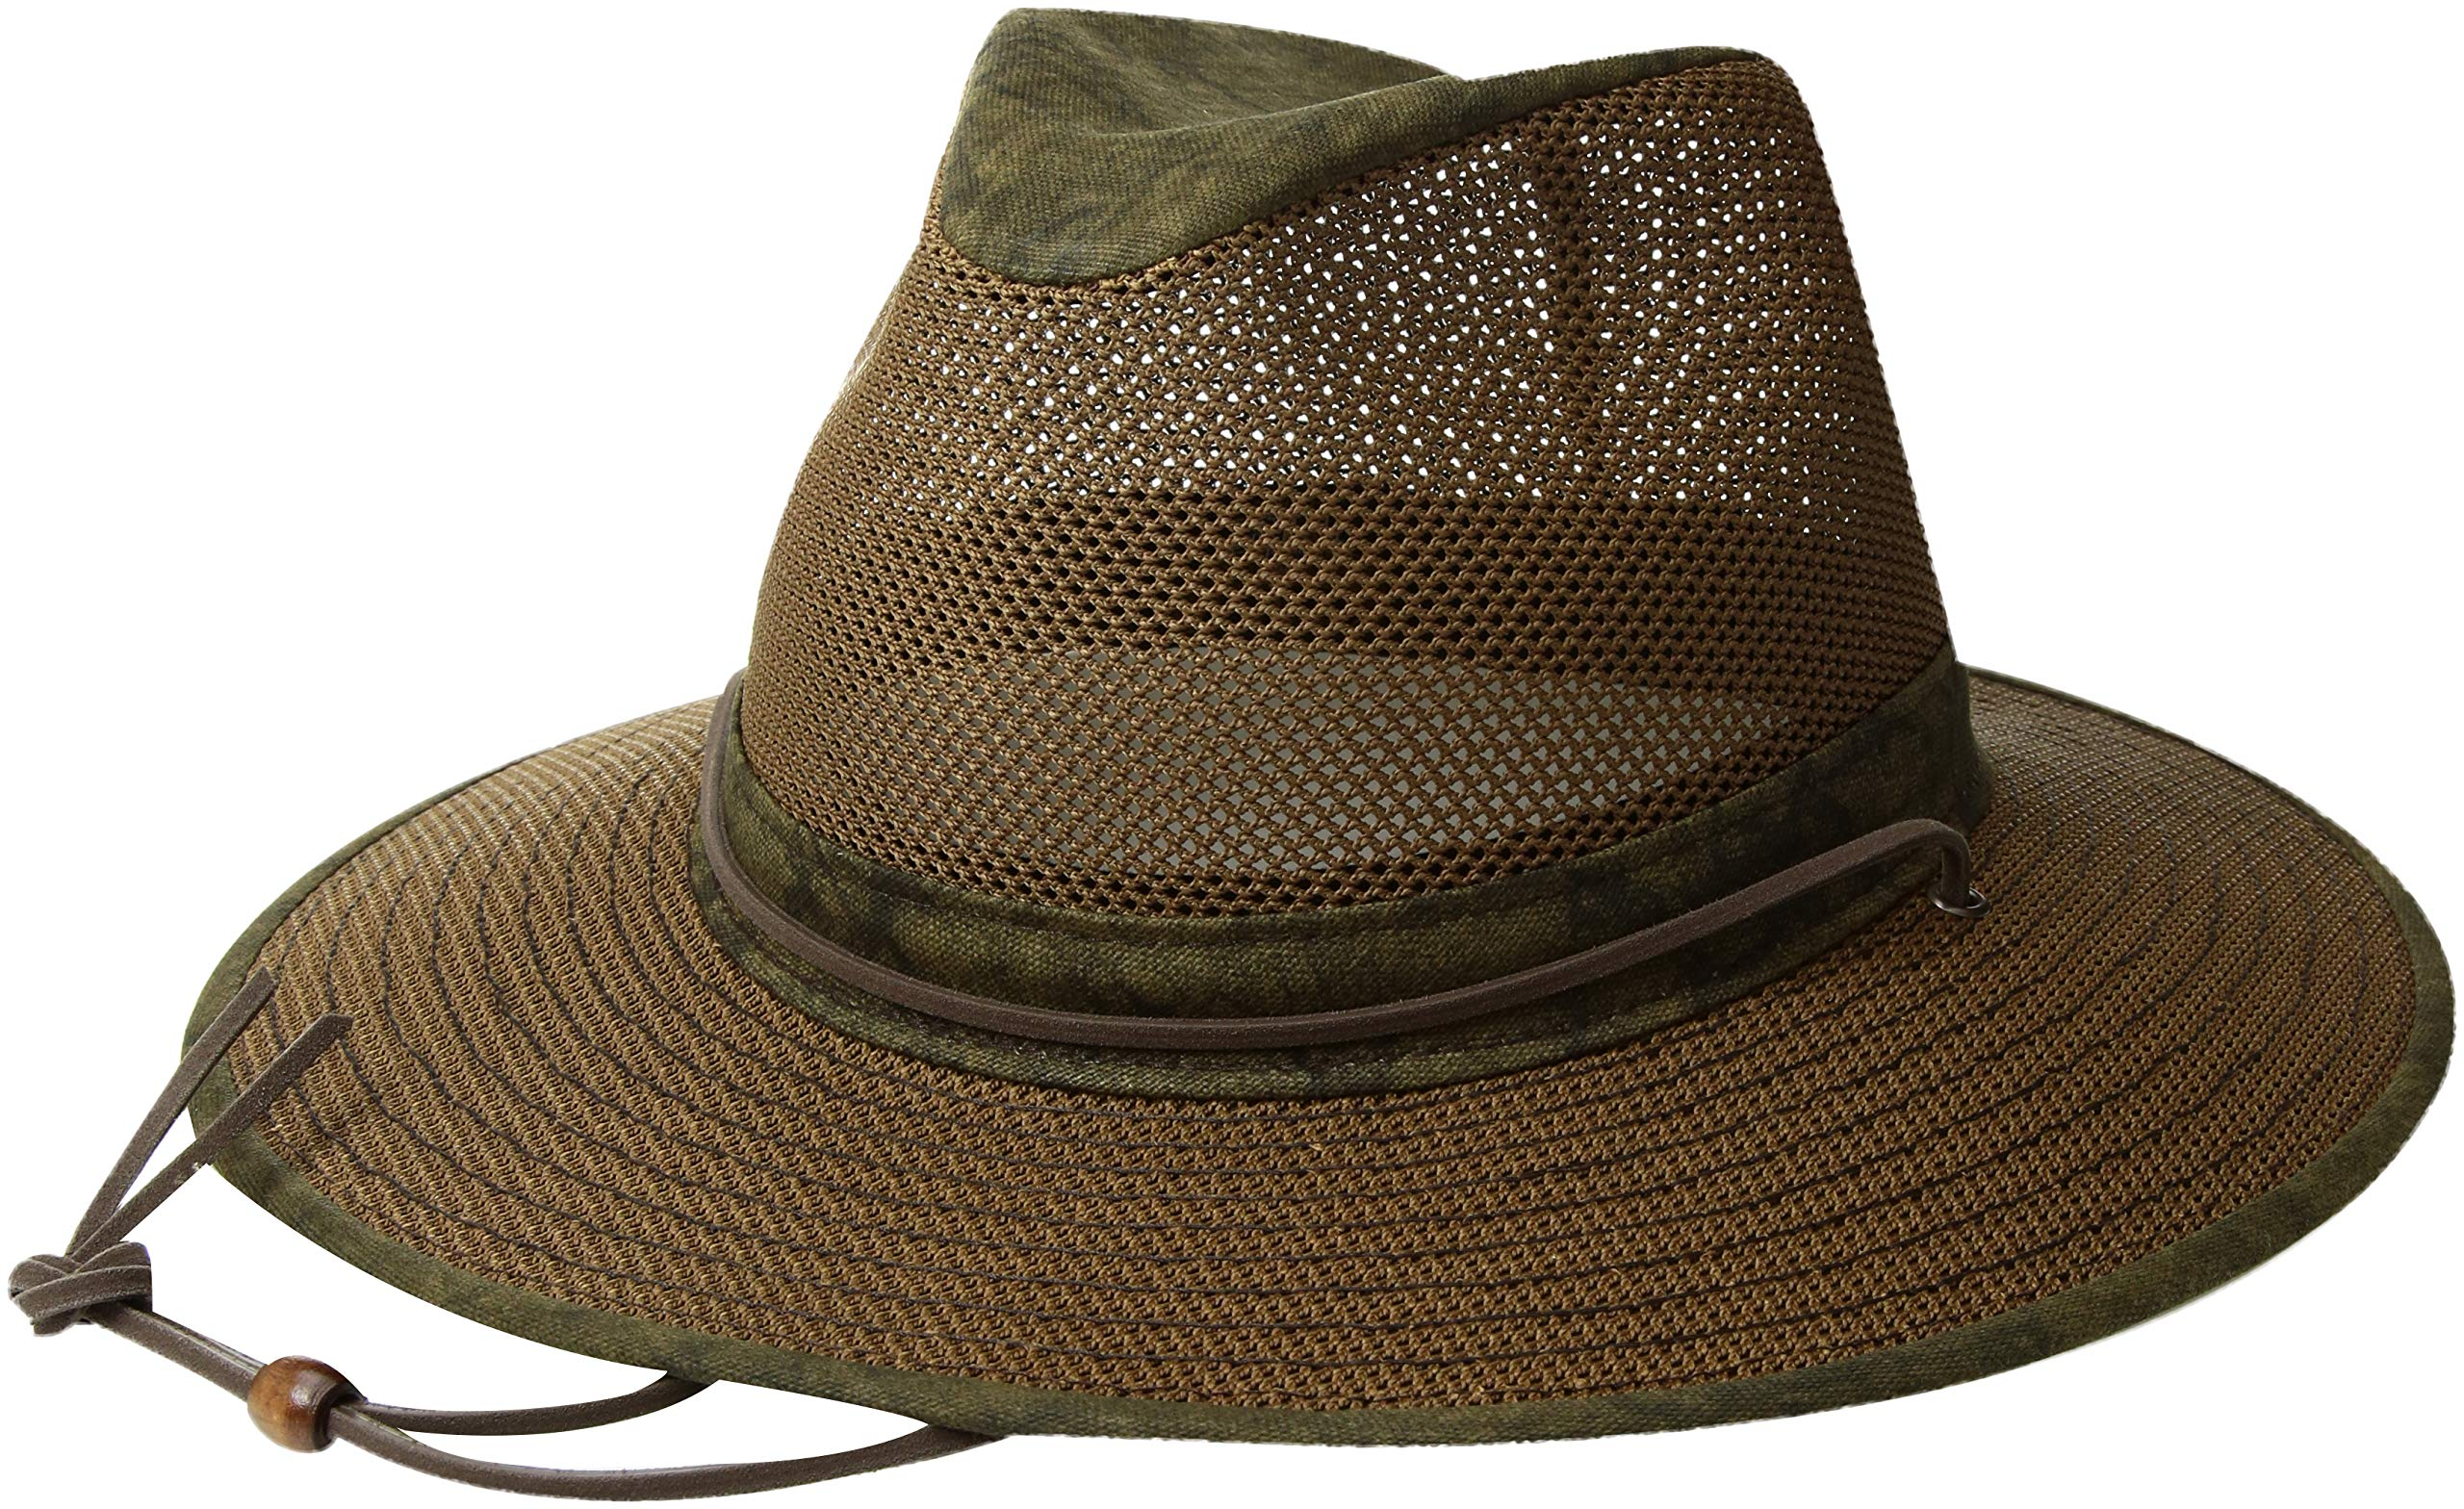 Henschel Hats Aussie Breezer 5310 Cotton Mesh Distress Gold Hat, Large